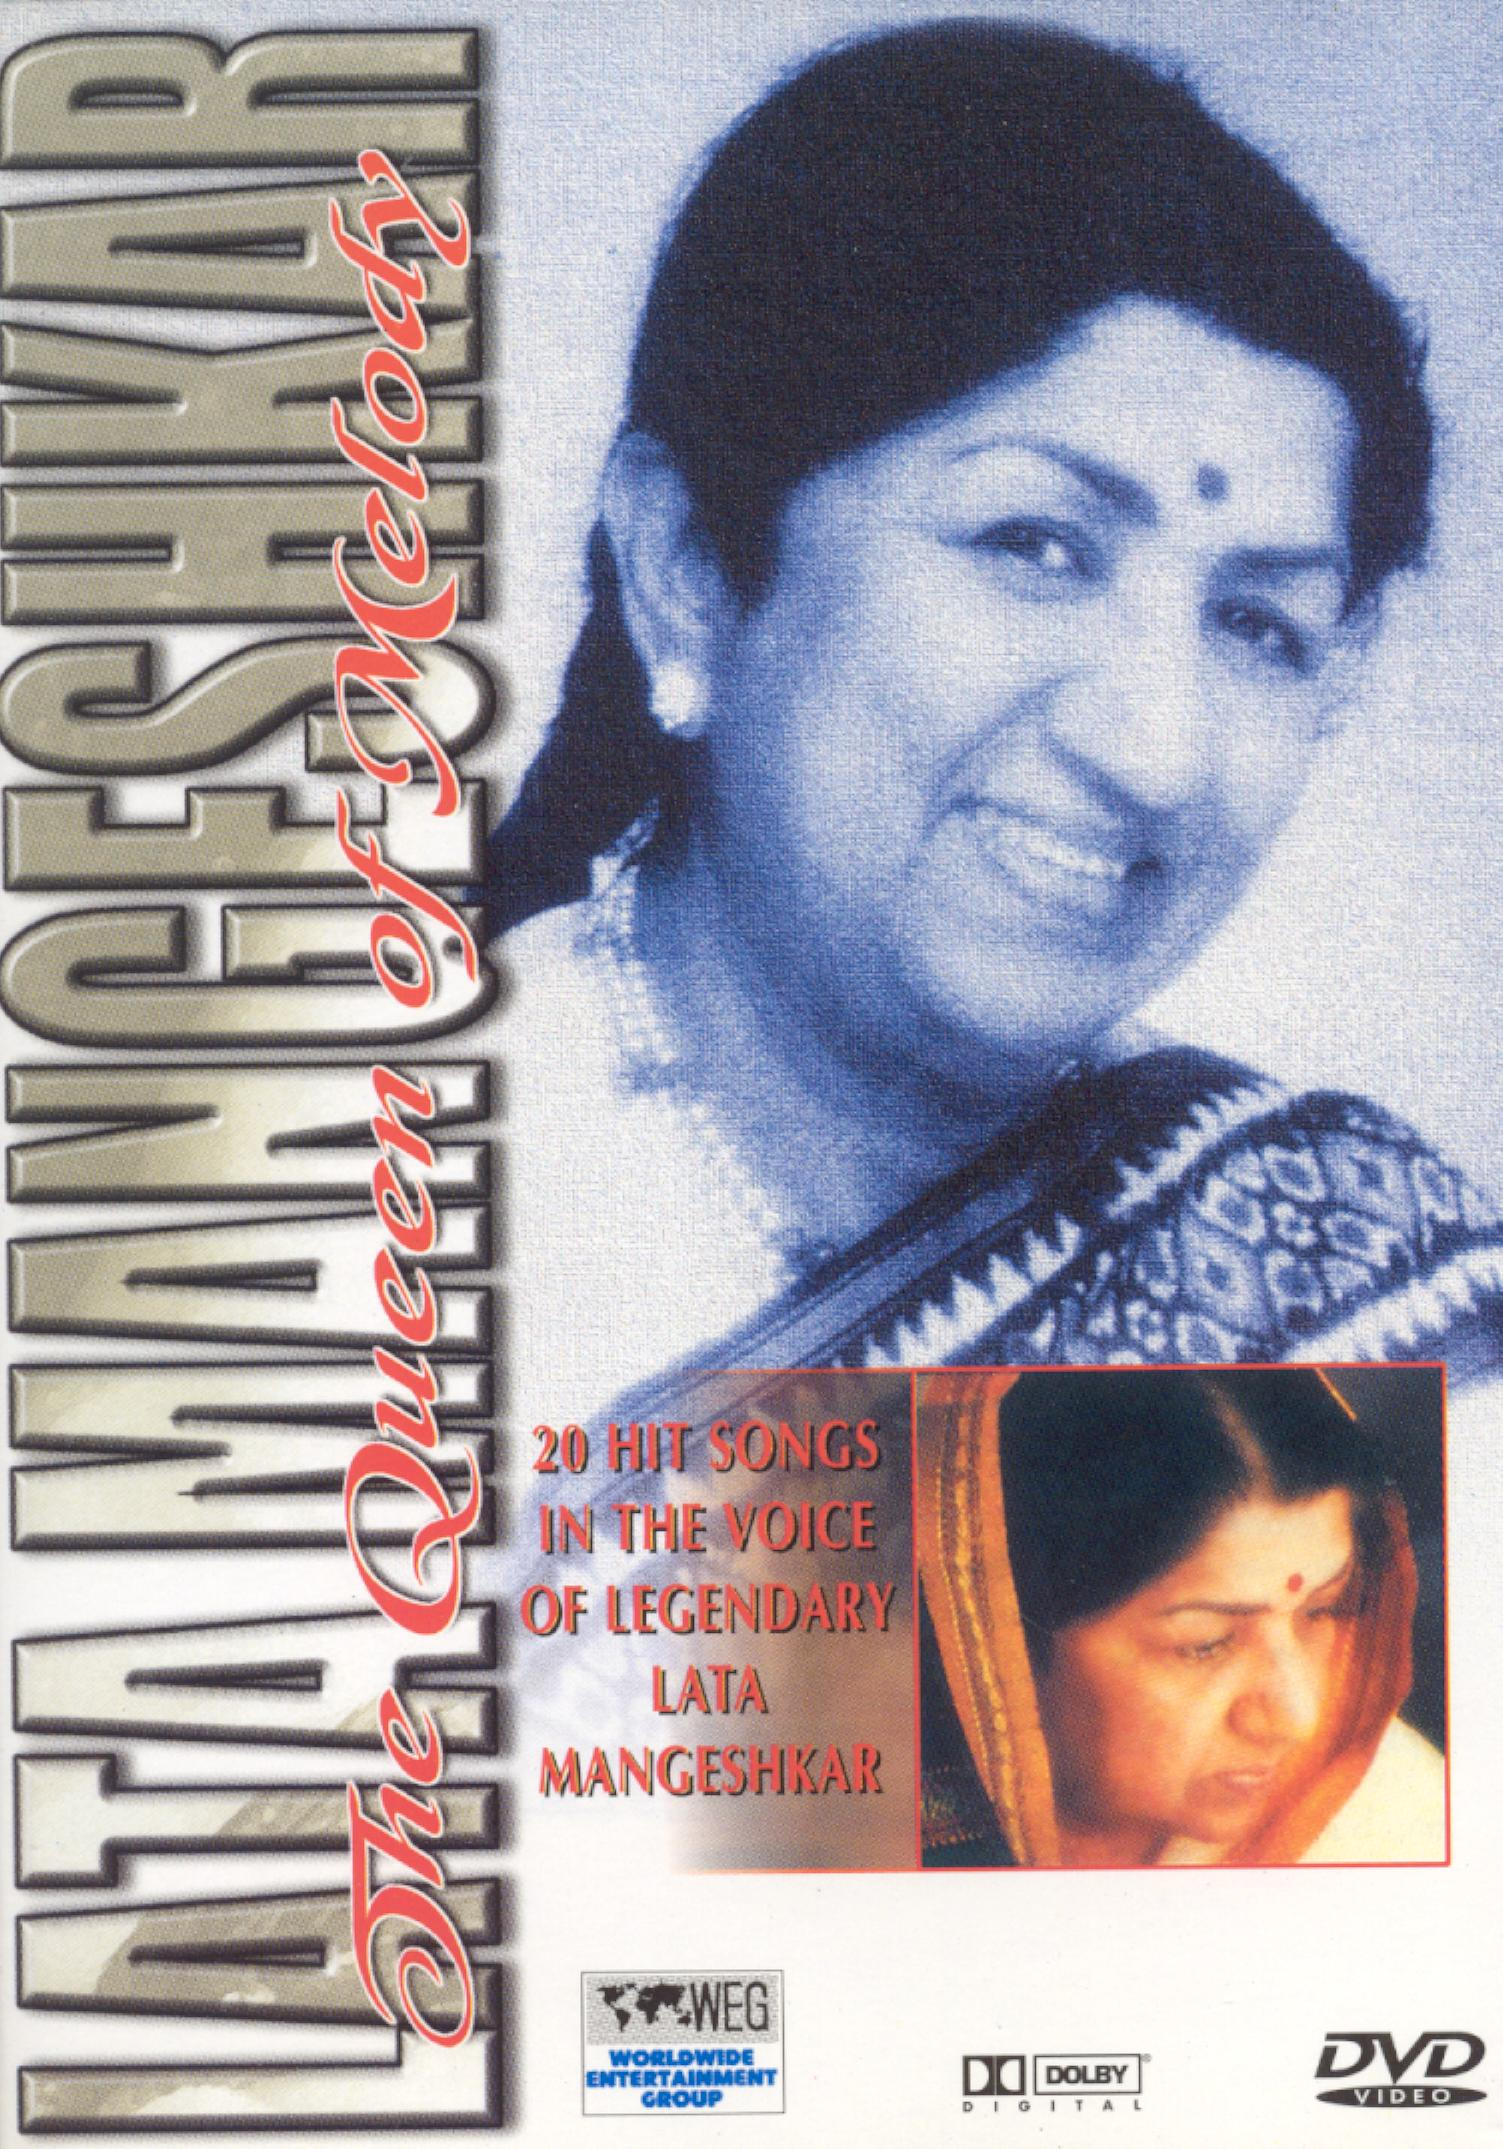 Lata Mangeshkar: The Queen of Melody